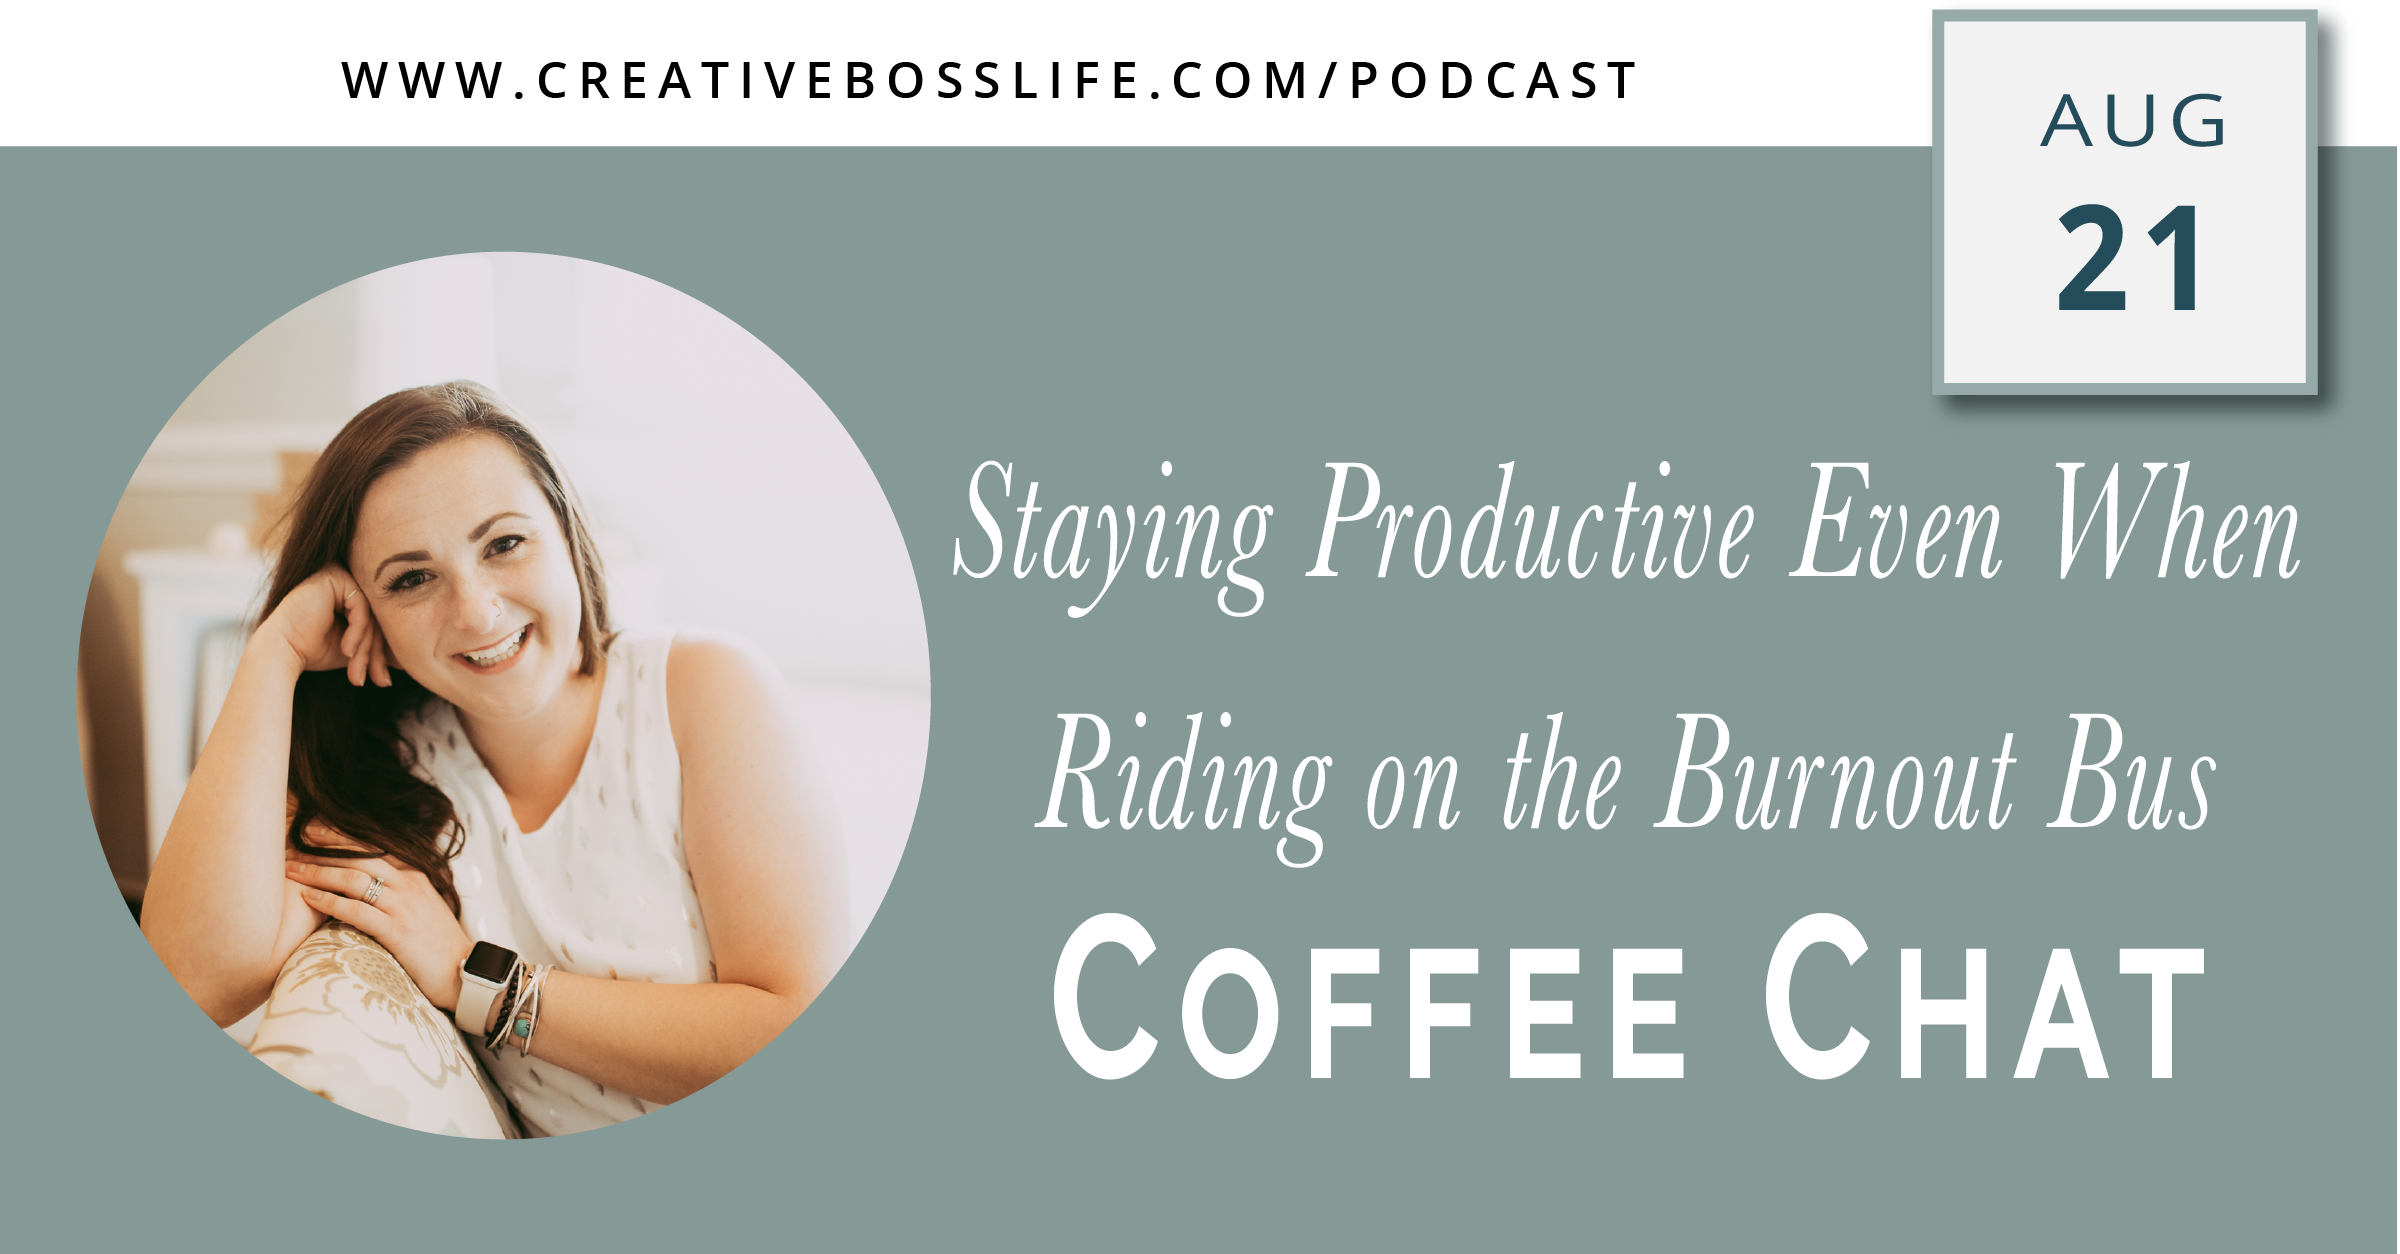 Staying Productive while on the verge of burn out